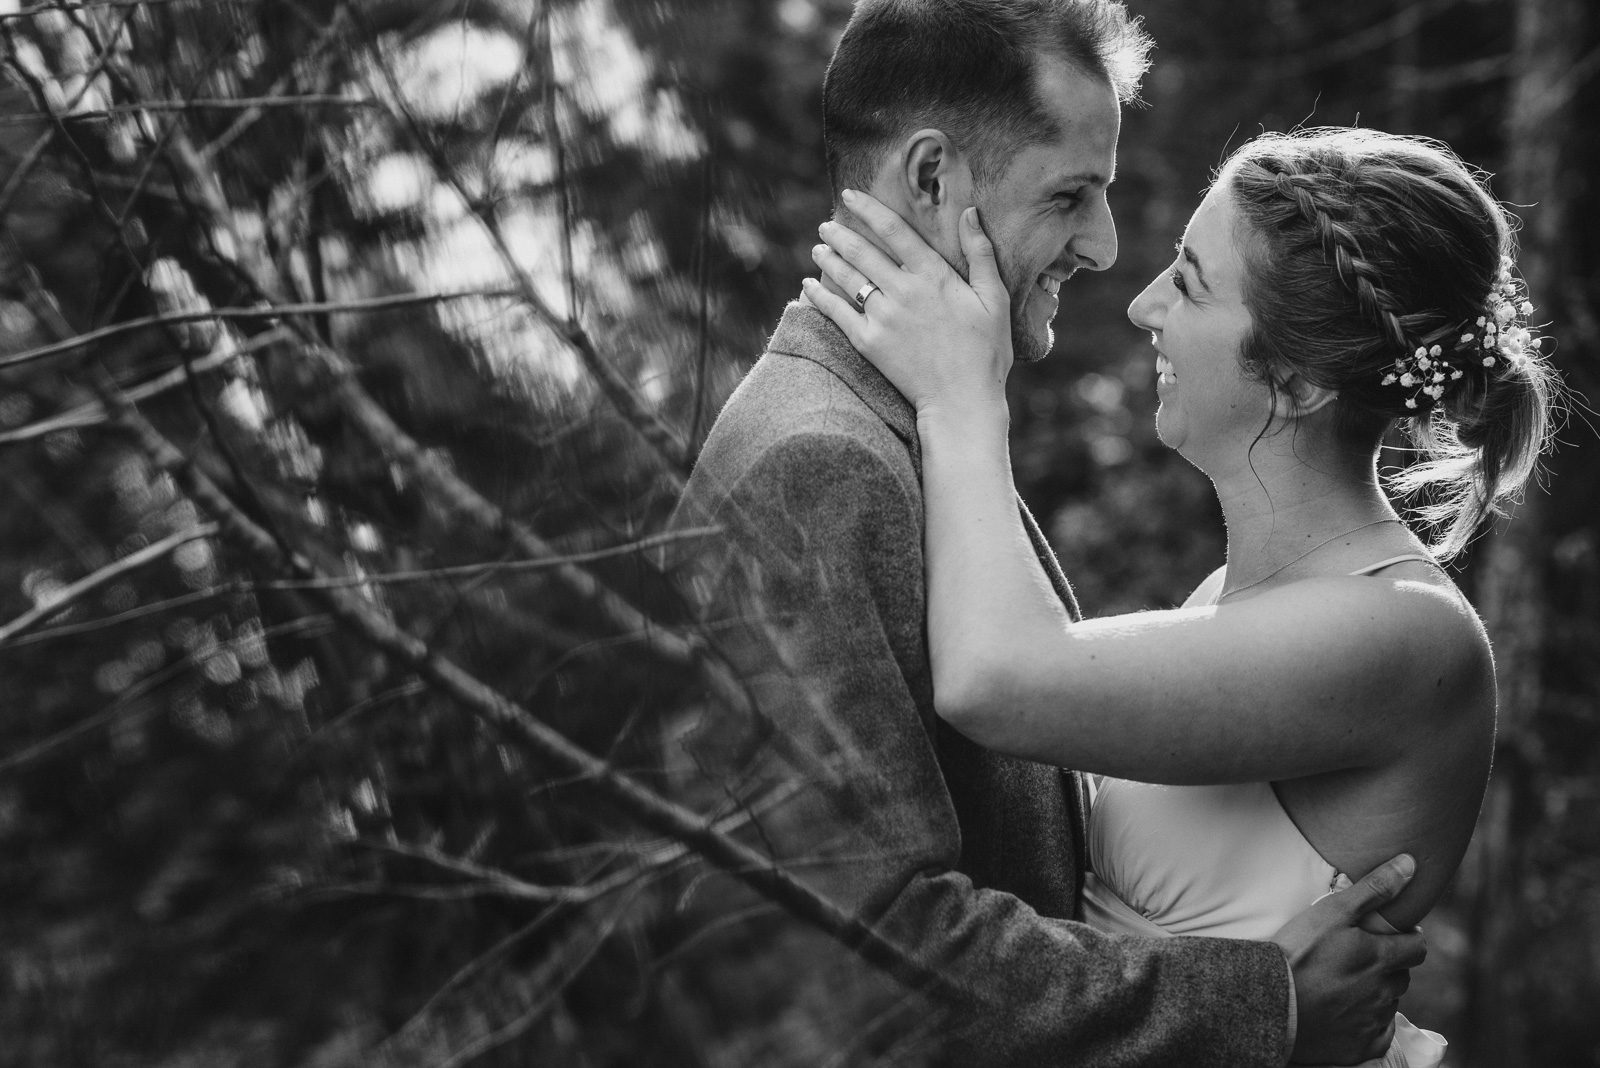 vancouver-island-wedding-photographers-cliff-gilker-park-smugglers-cove-elopement-29.jpg